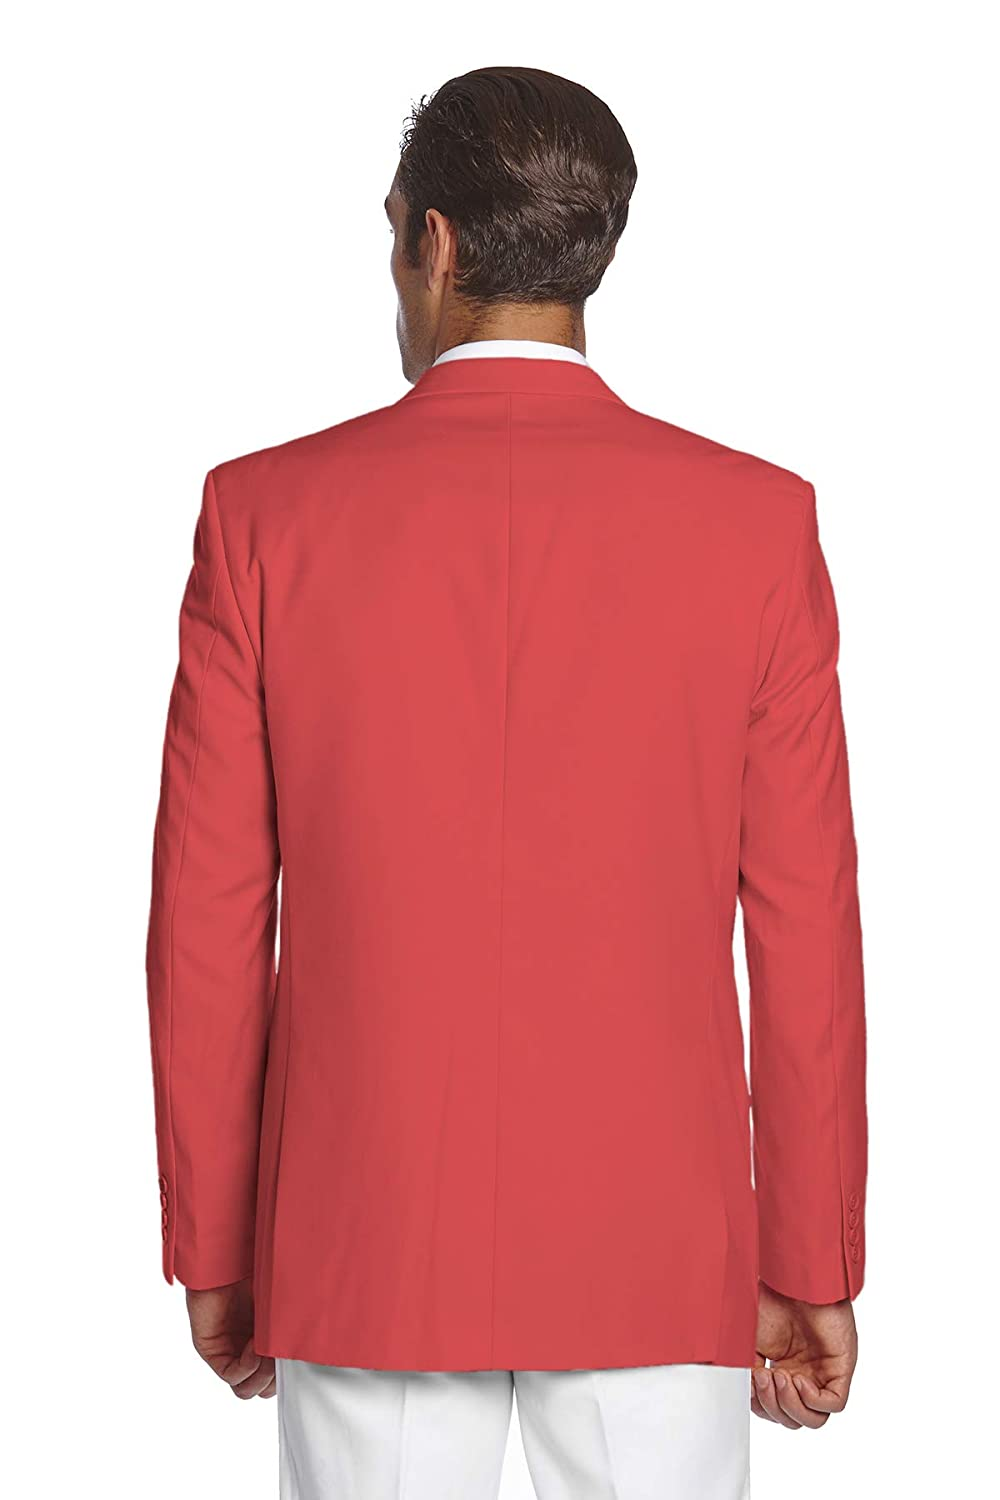 CONCITOR Mens Suit Jacket Separate Blazer Coat Solid CORAL PINK Color 2 Buttons